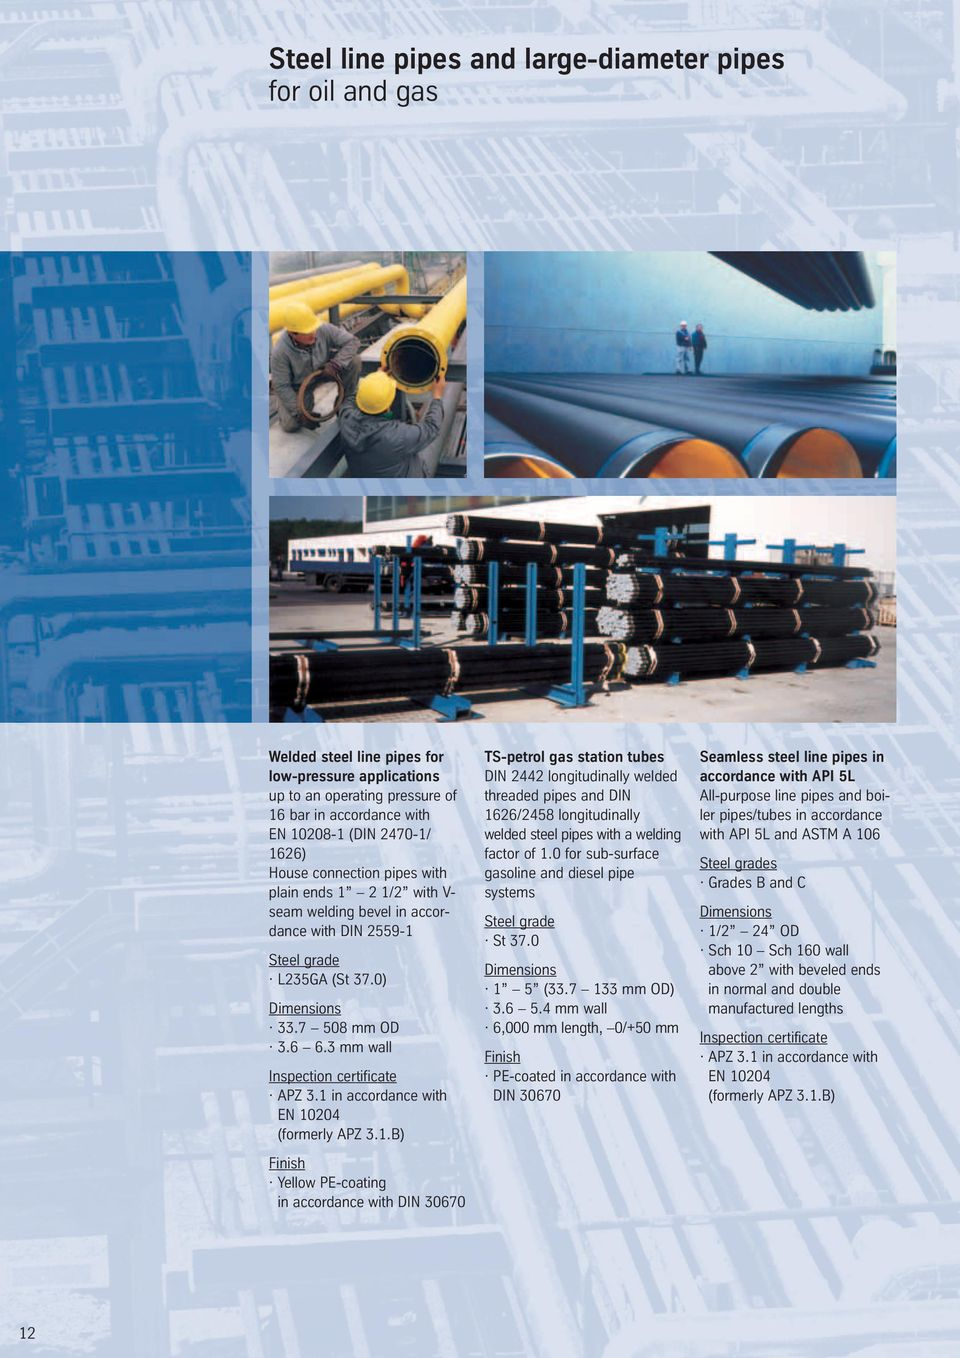 Carbon and stainless steel pipes for the transportation of